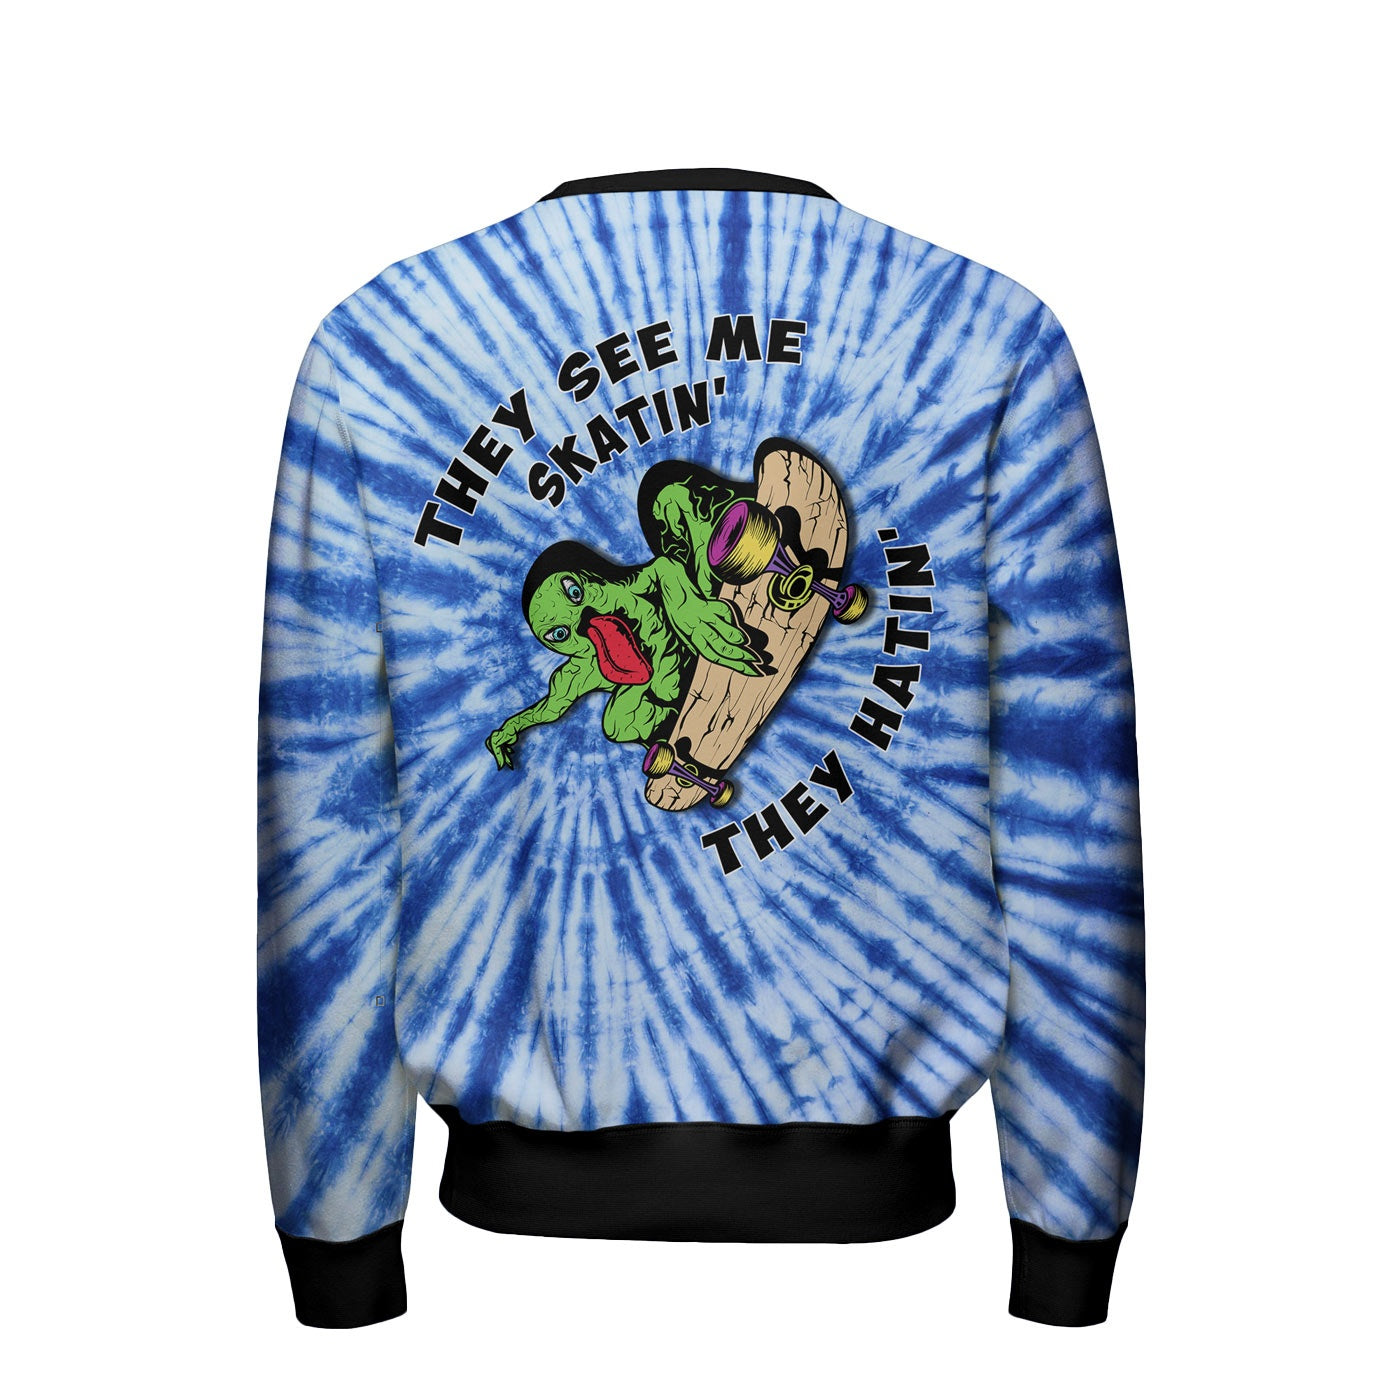 Skate Monster Sweatshirt